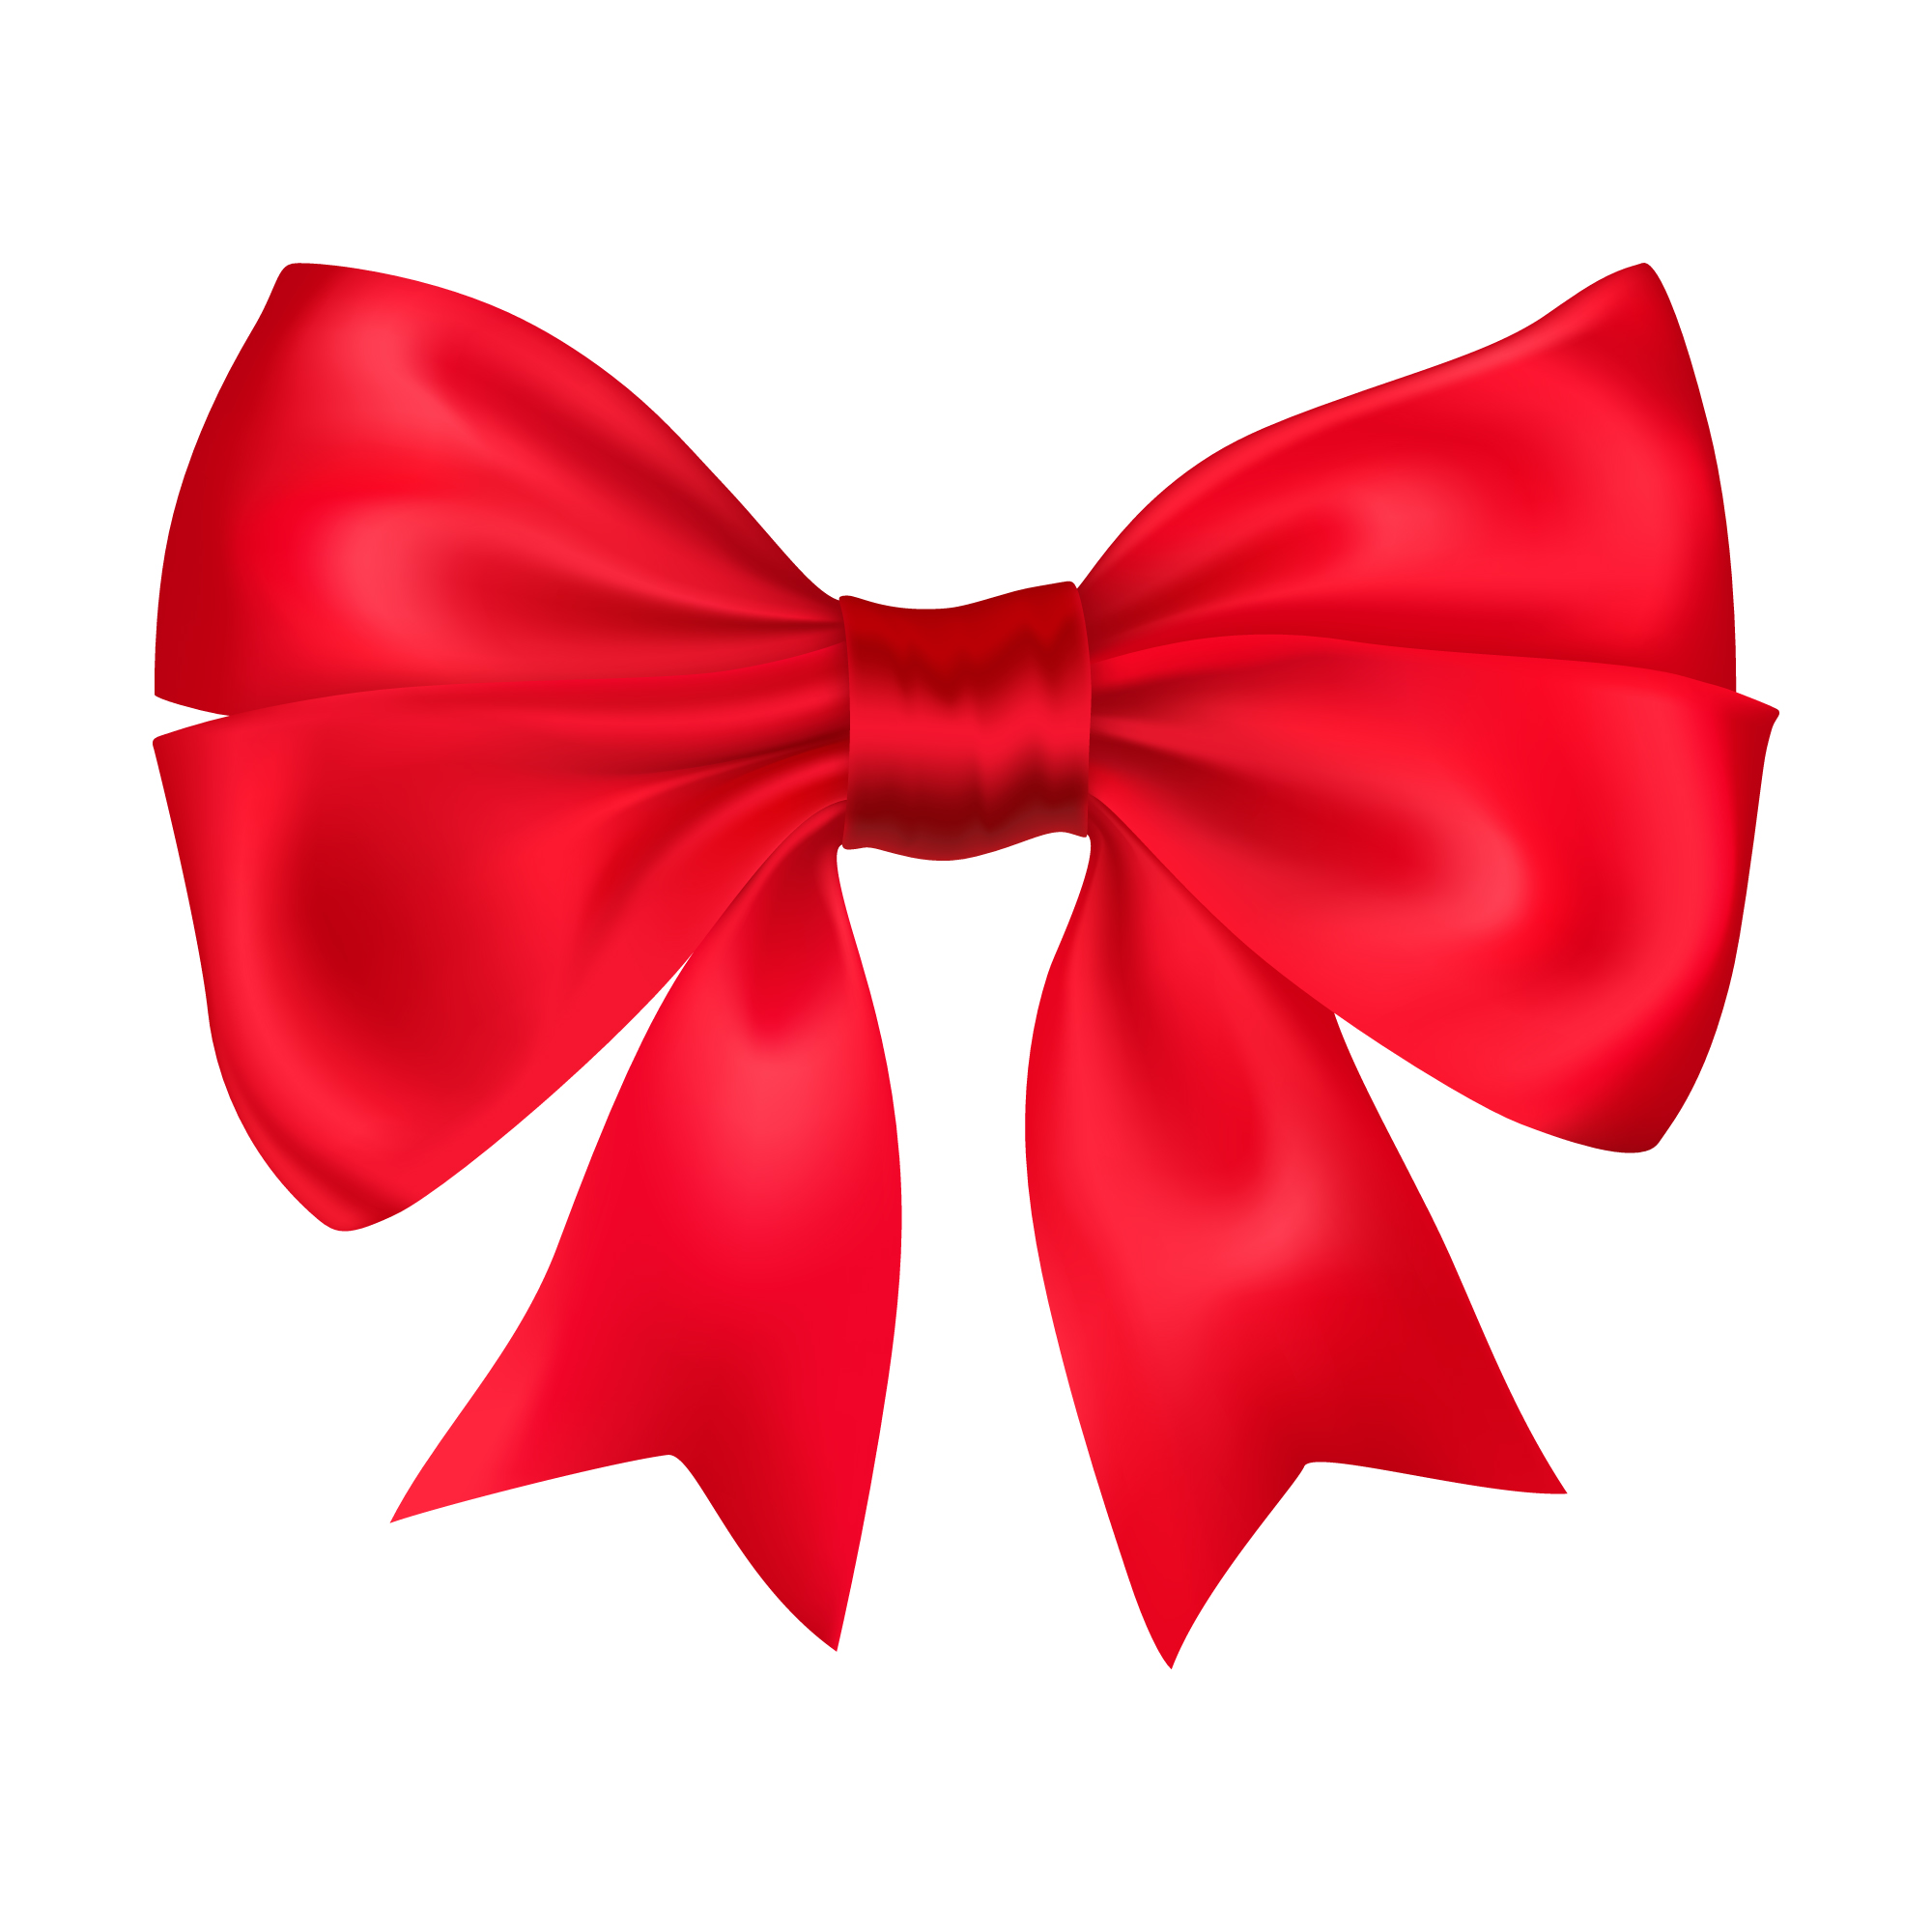 Decorative red bow